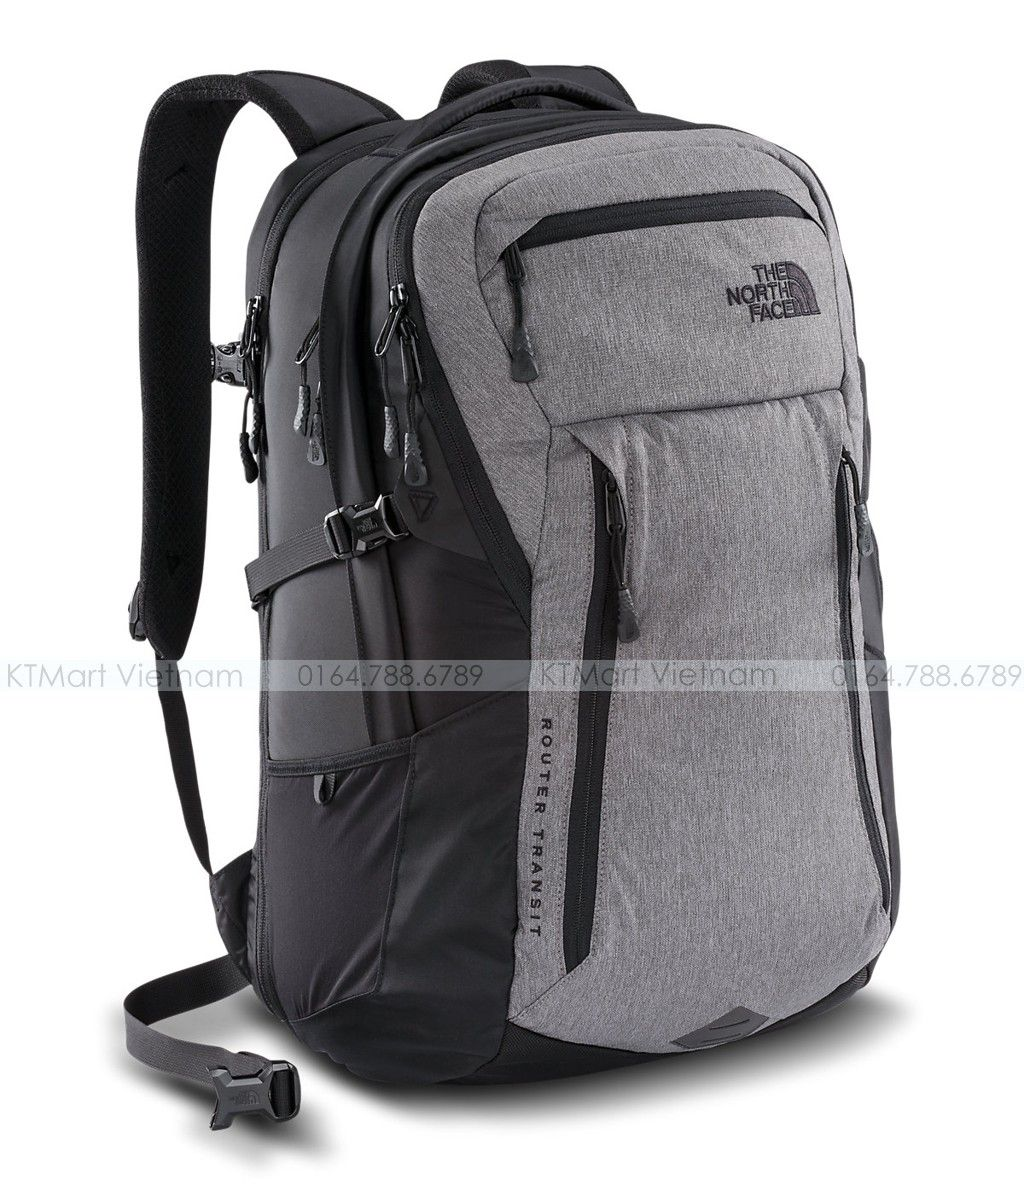 7e15b924fa75 The North Face Router Transit Backpack Laptop NF0A2ZCO Model 2016 The North  Face ba lo xin